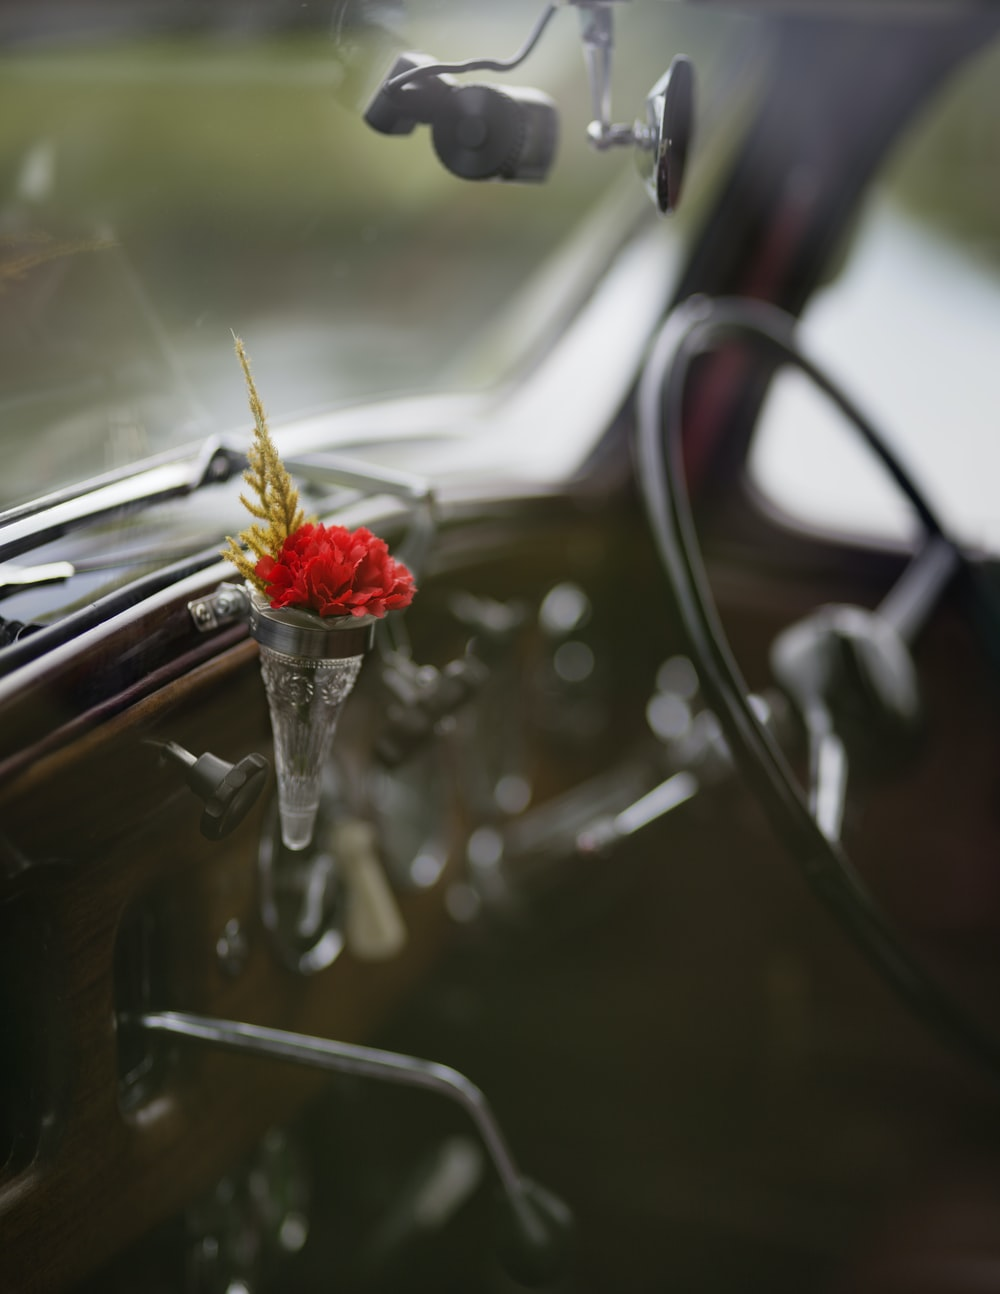 focus photo of flower inside vehicle